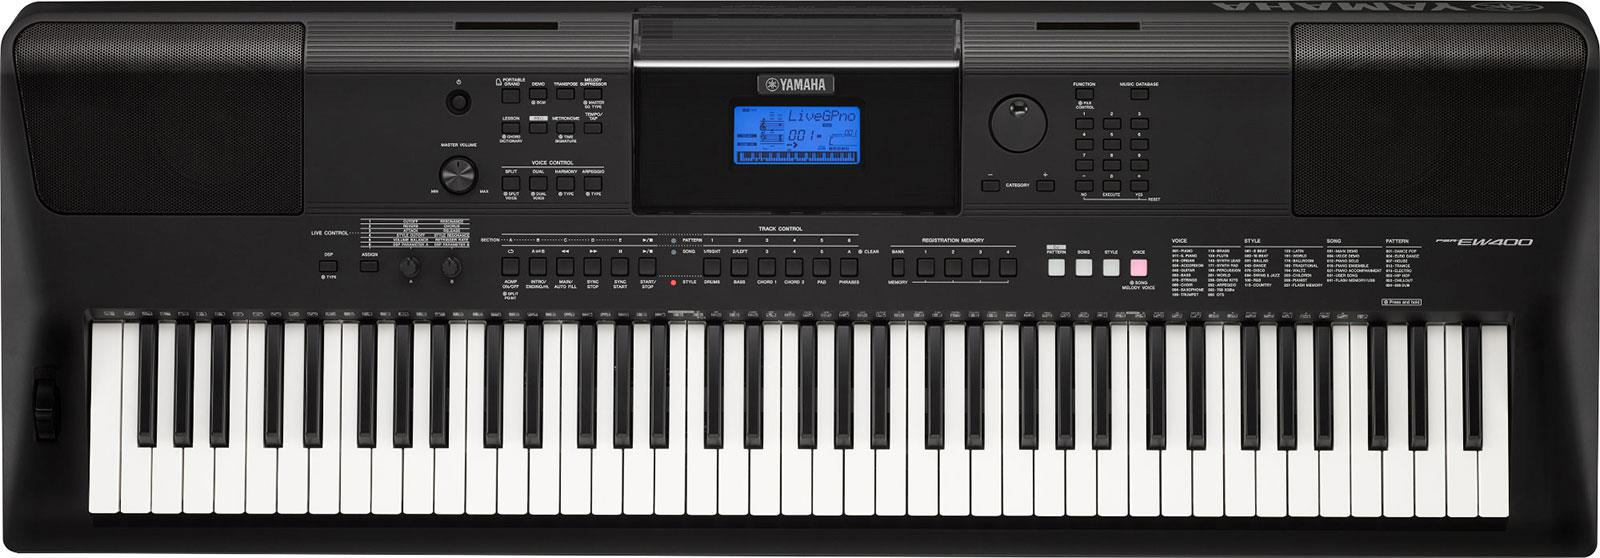 Yamaha psr ew400 keymusic for Yamaha psr ew